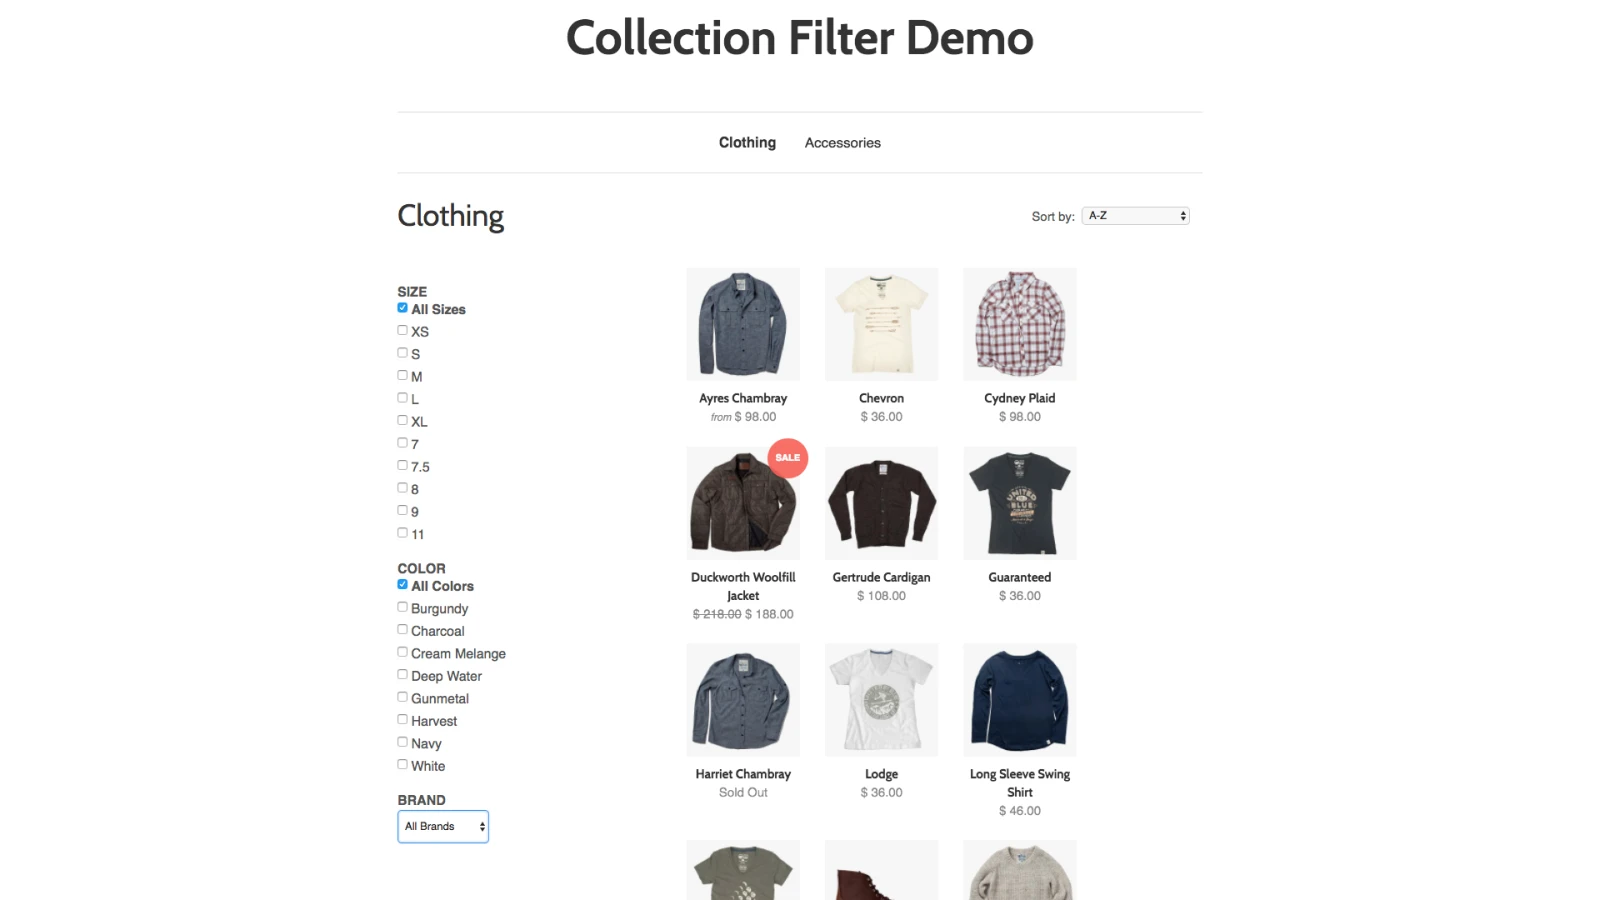 Collection Filter